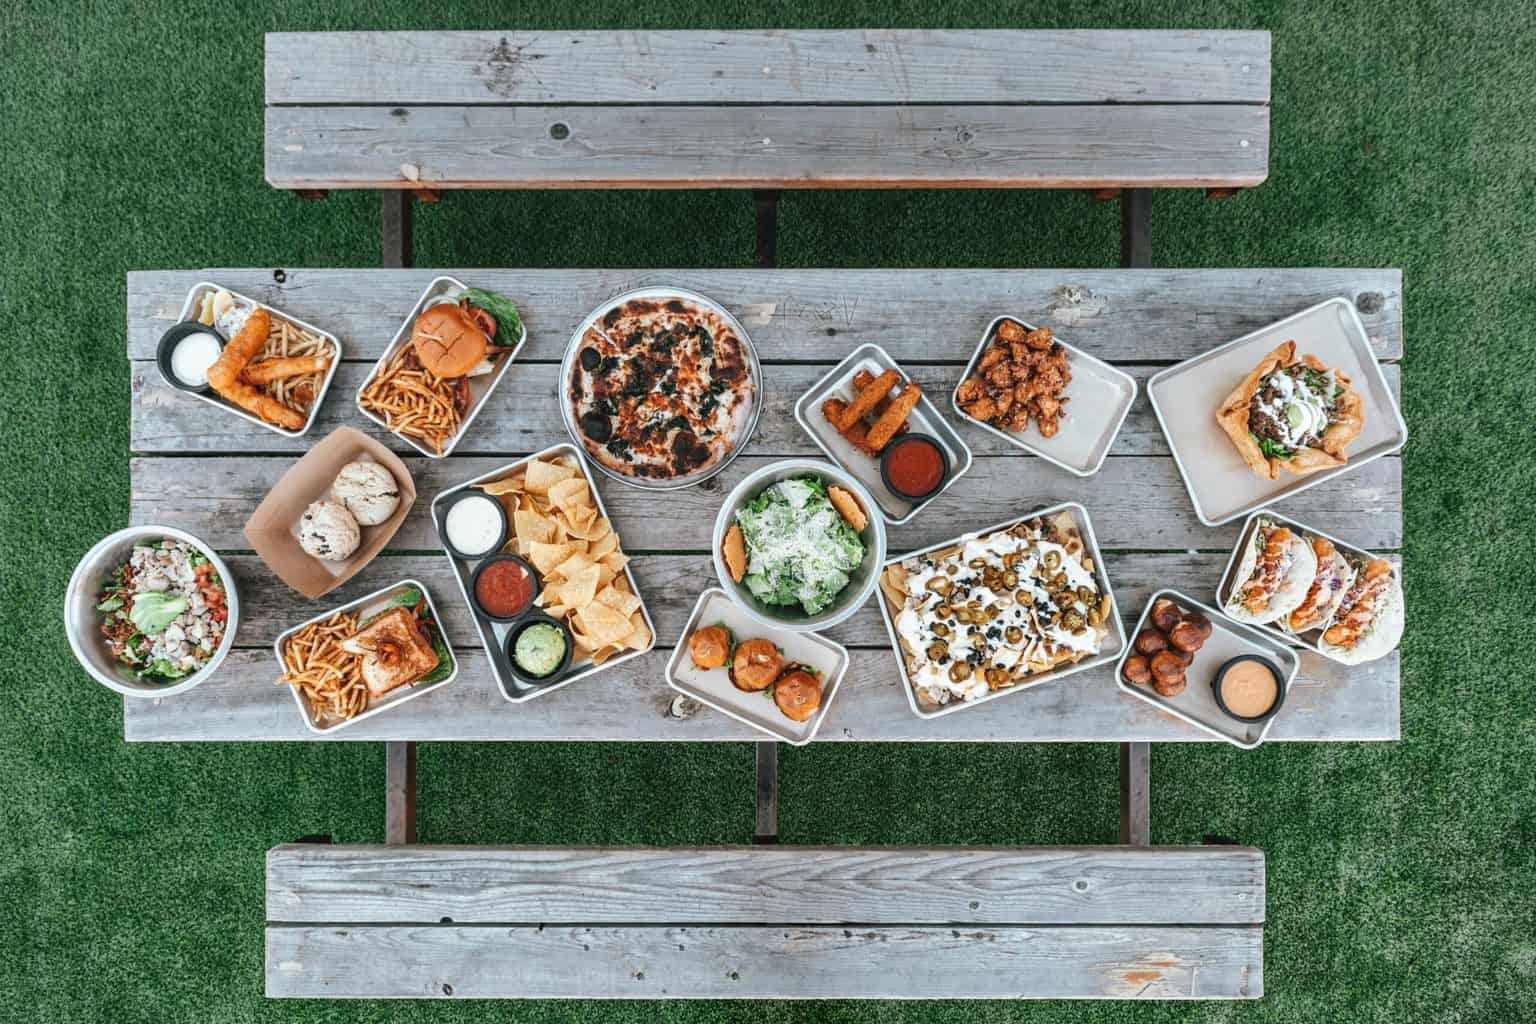 A top view of a picnic table with food